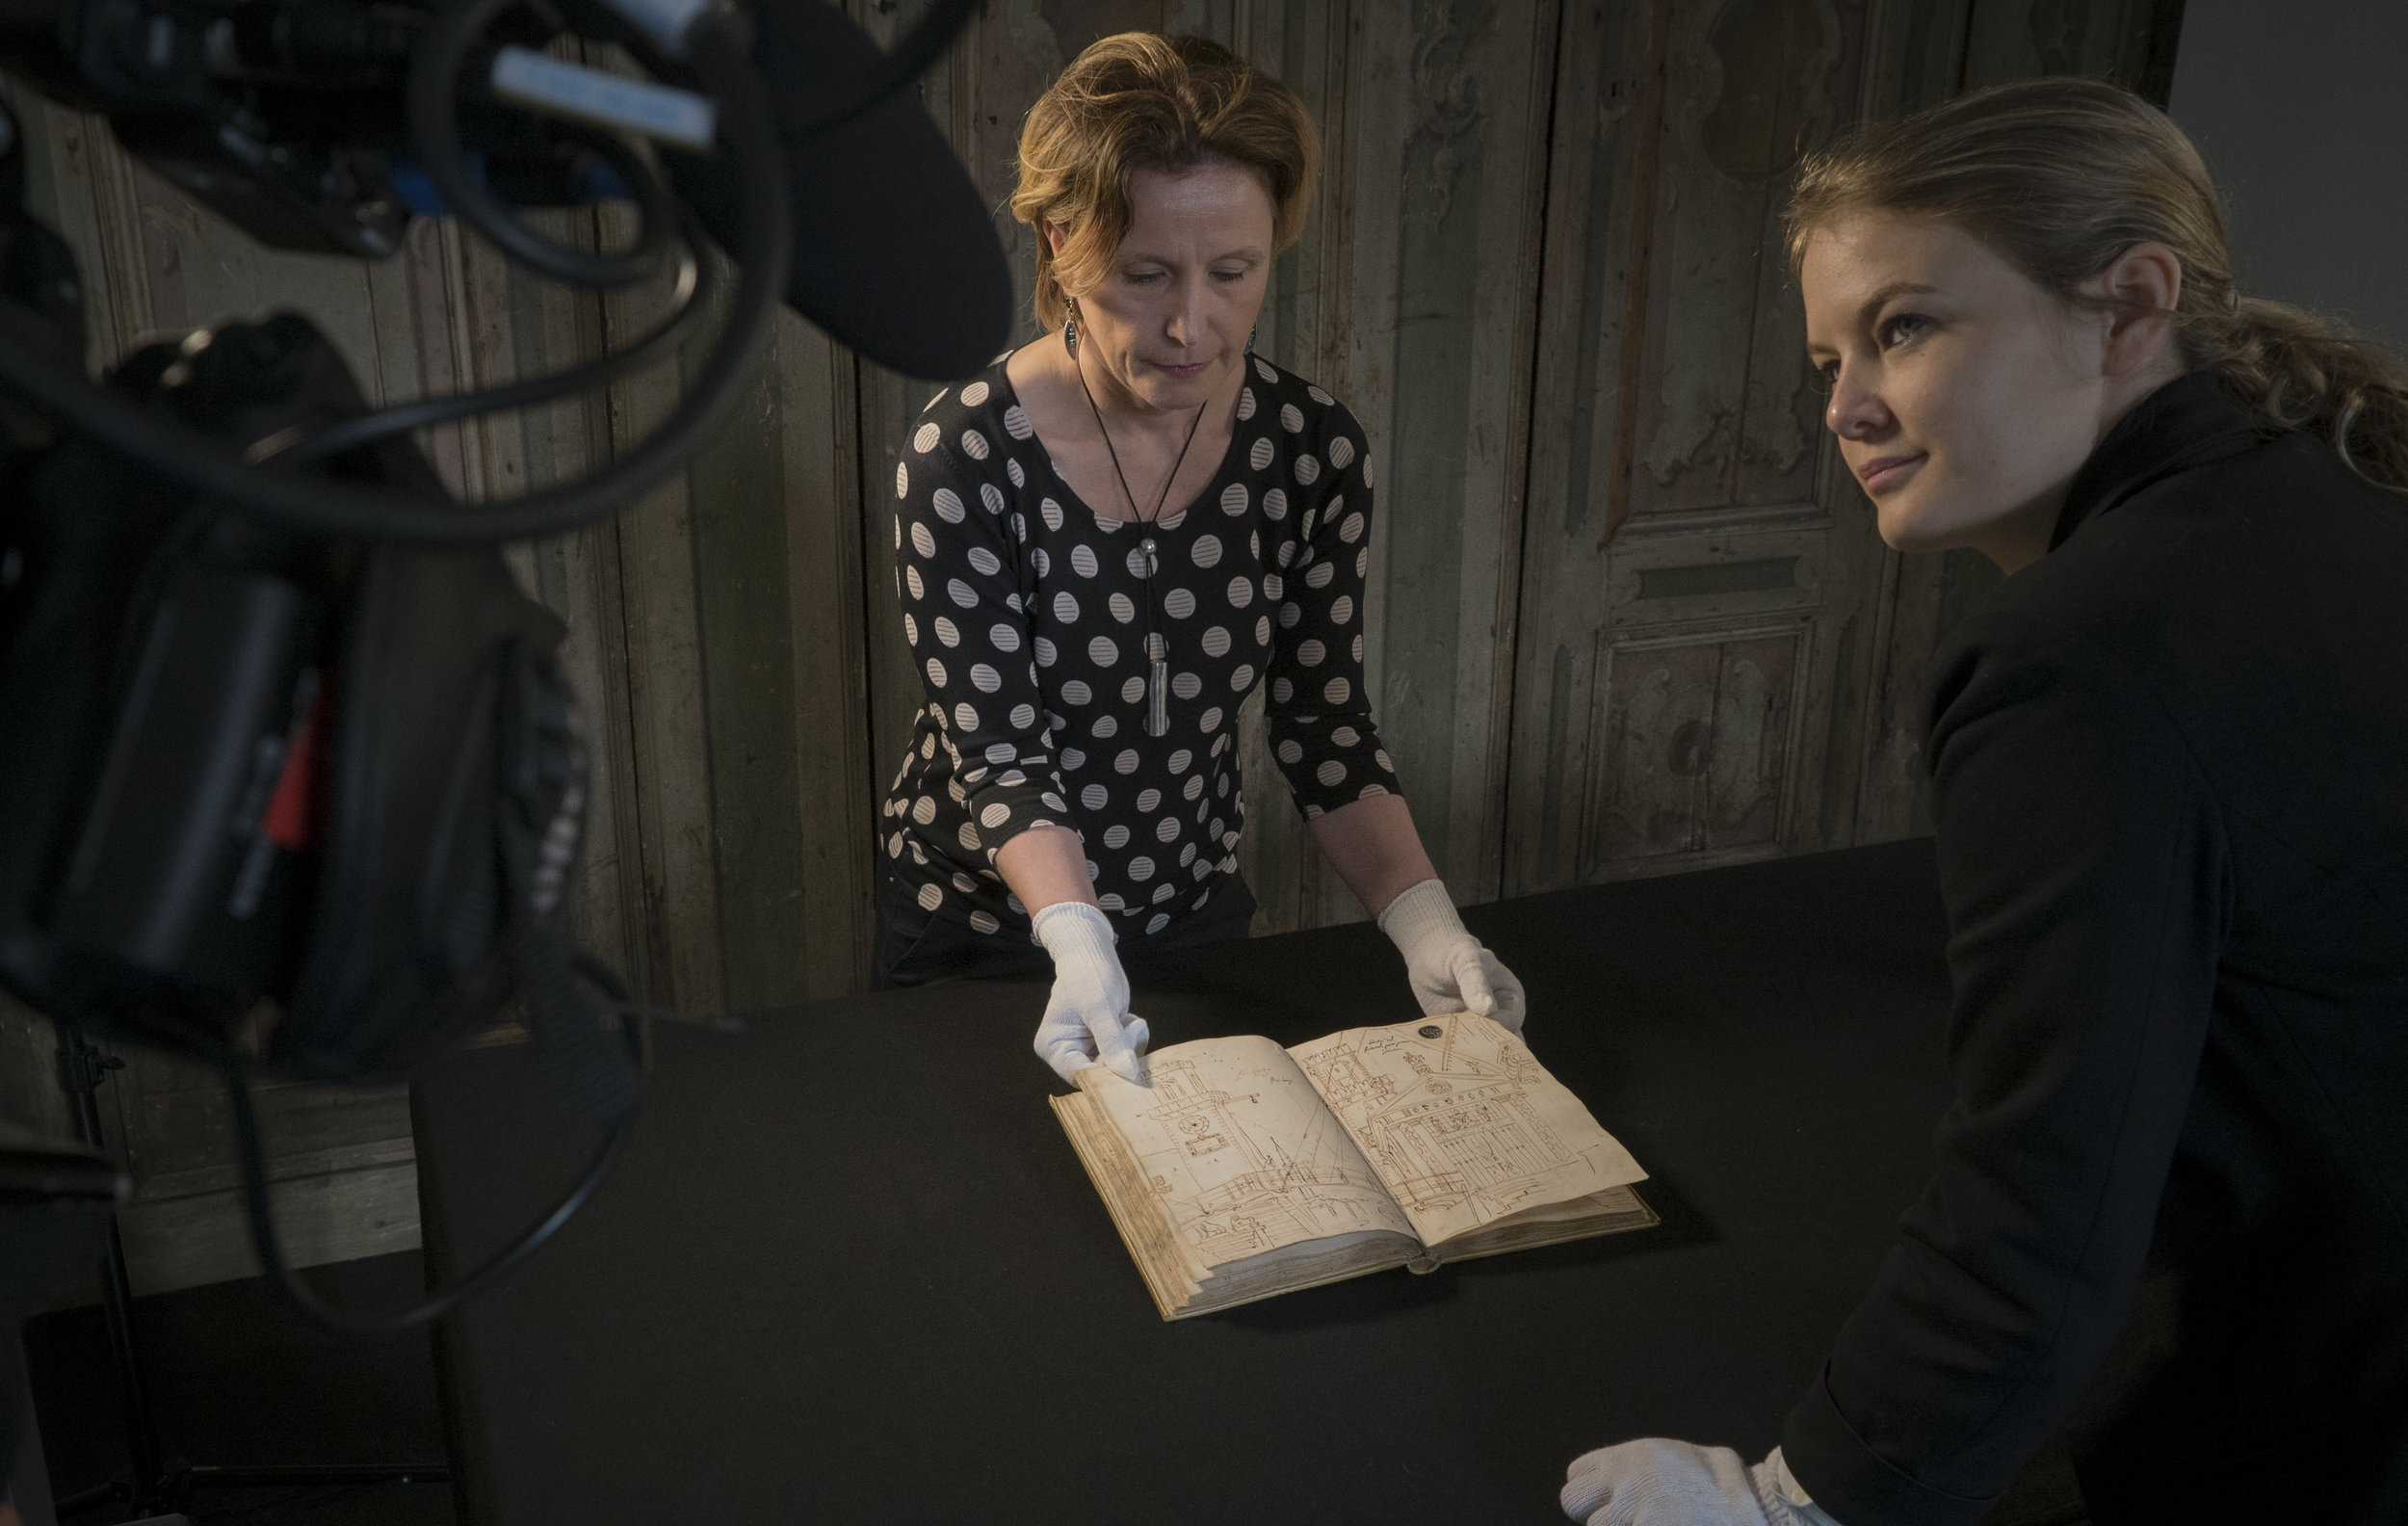 Filming Rosie Razzall and sketchbook at Accademia © EXHIBITION ON SCREEN (David Bickerstaff)